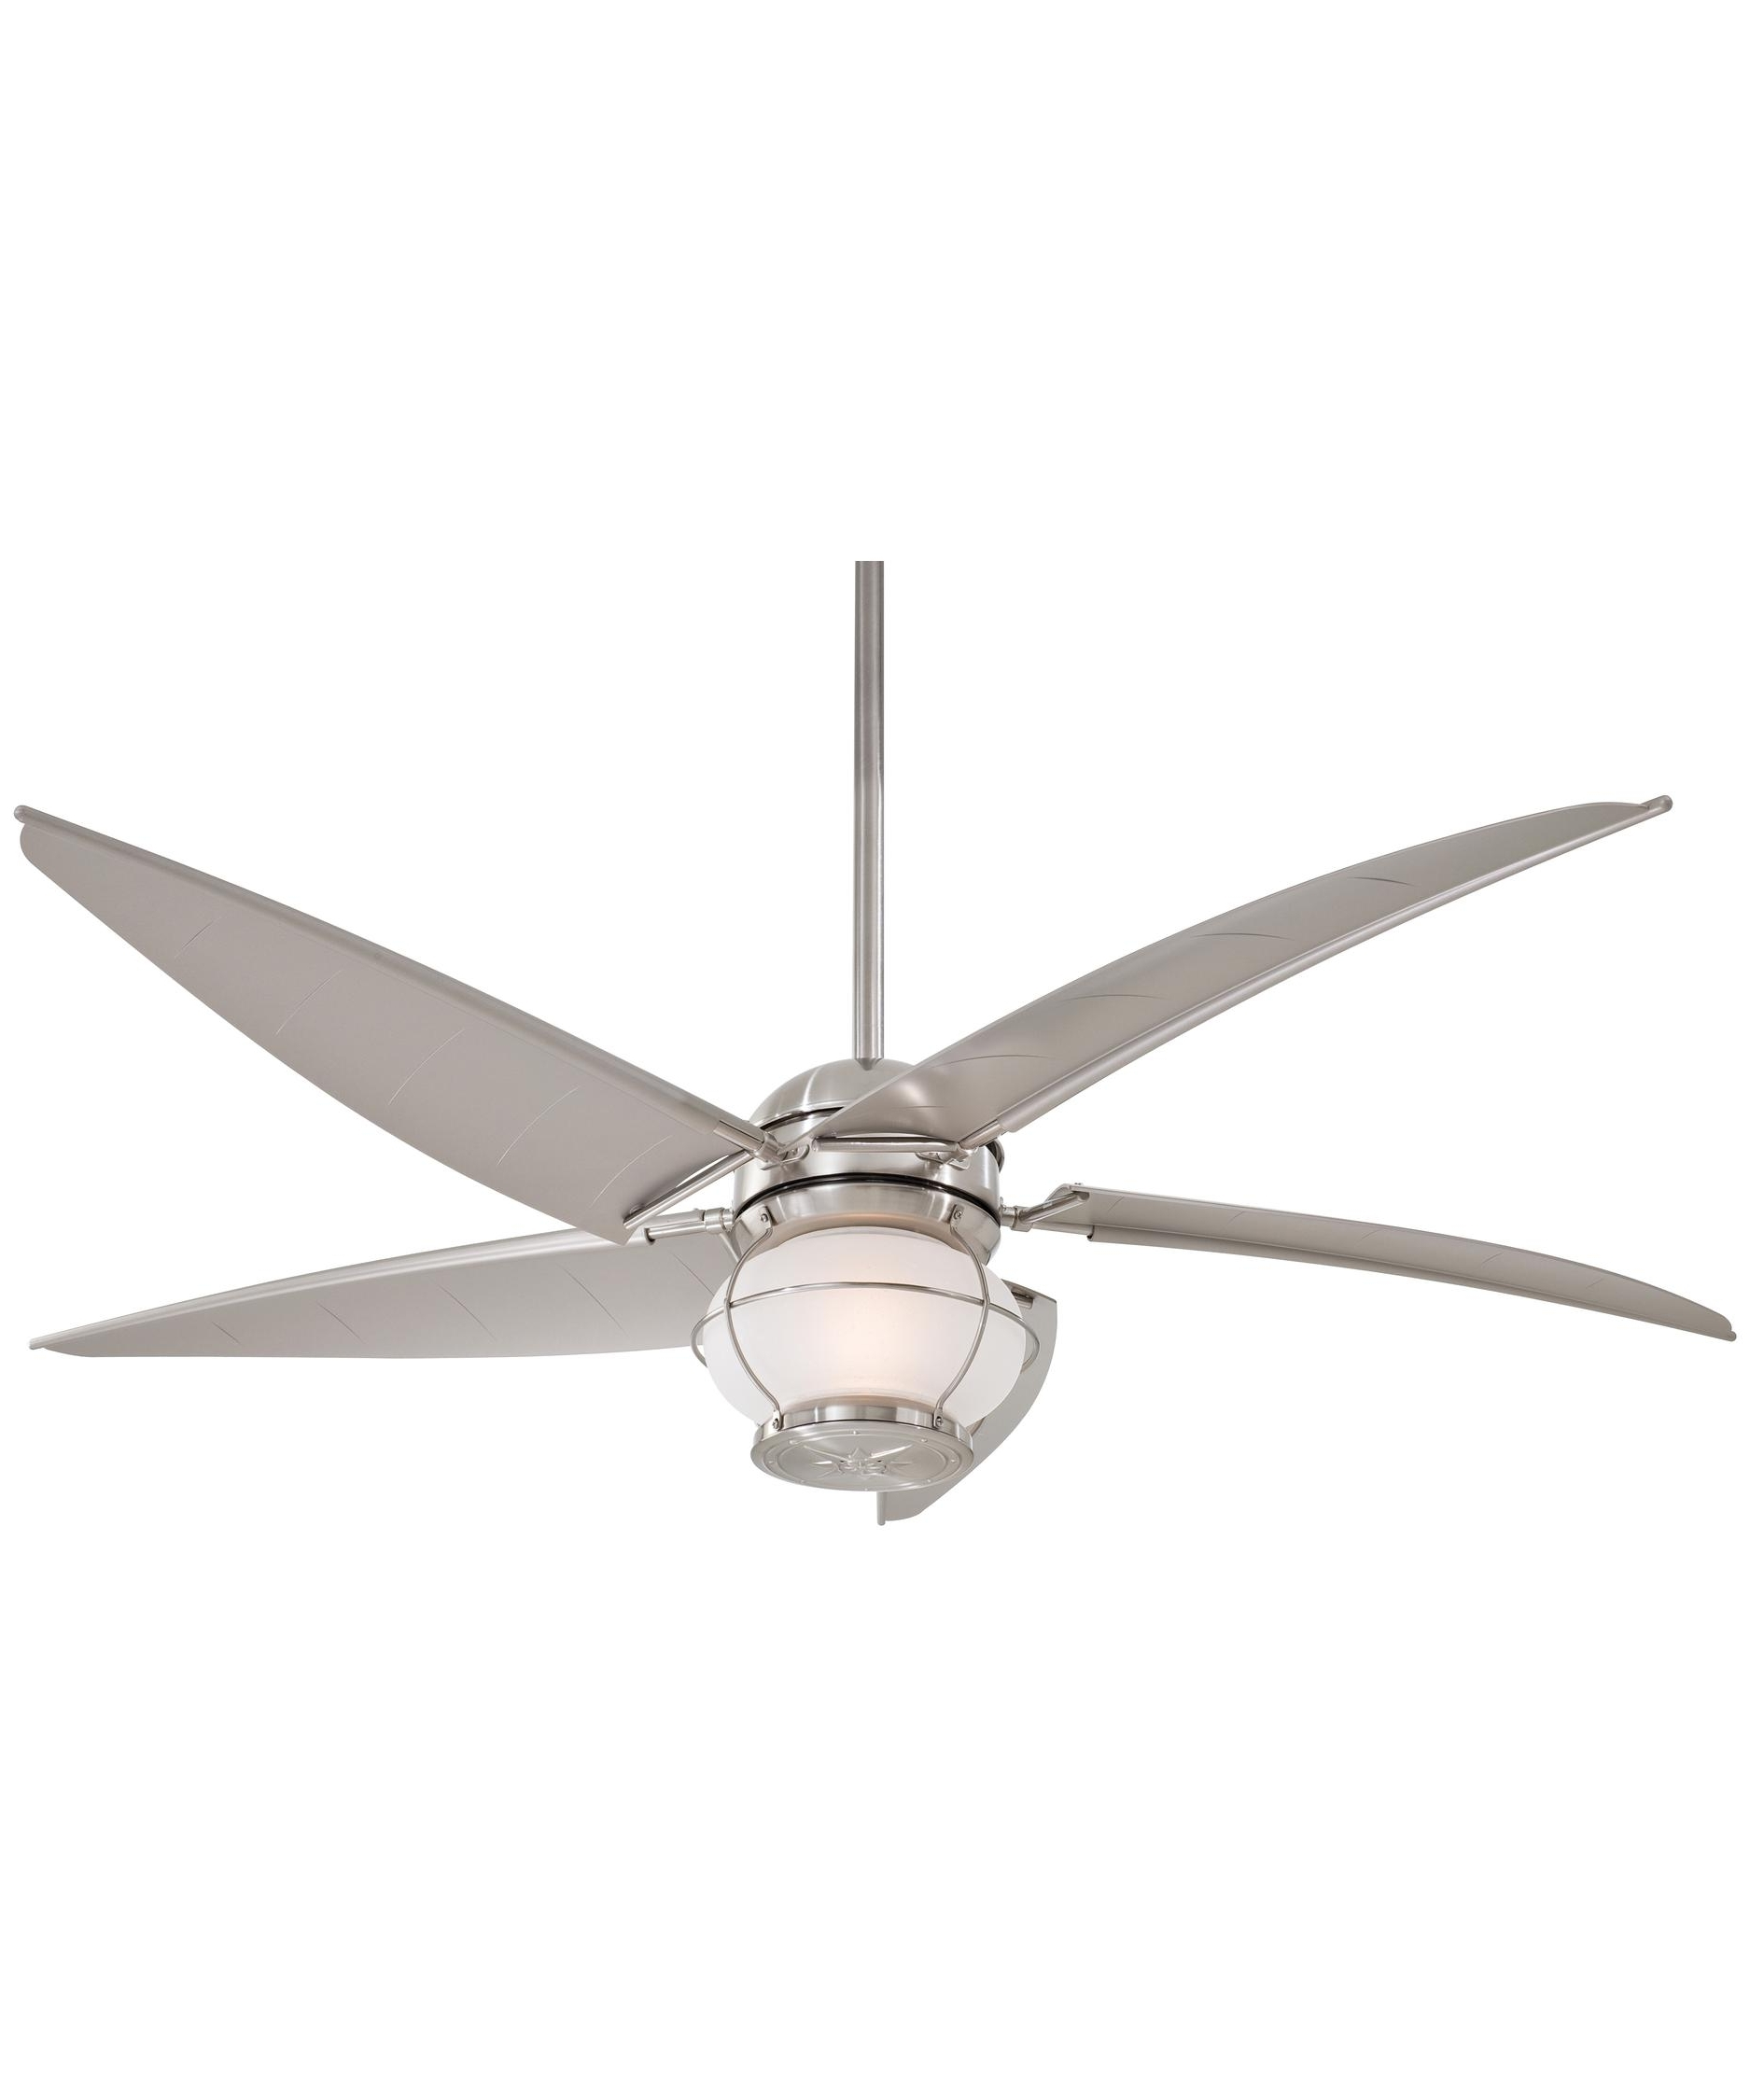 2019 Nickel Outdoor Ceiling Fans Pertaining To Minka Aire F579 Magellan 60 Inch 5 Blade Ceiling Fan (Gallery 5 of 20)